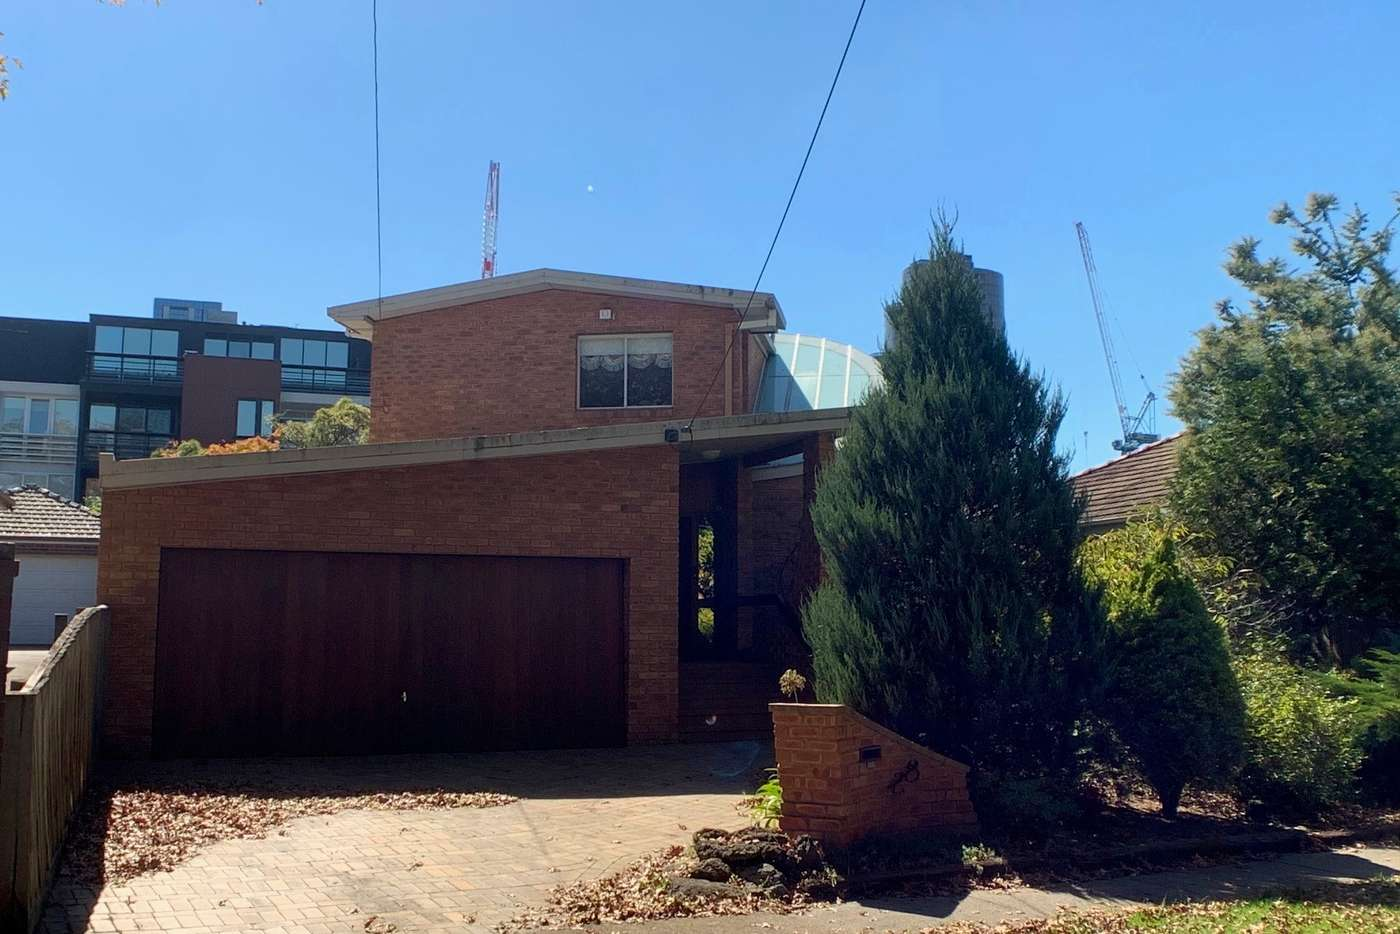 Main view of Homely house listing, 28 Kintore Crescent, Box Hill VIC 3128